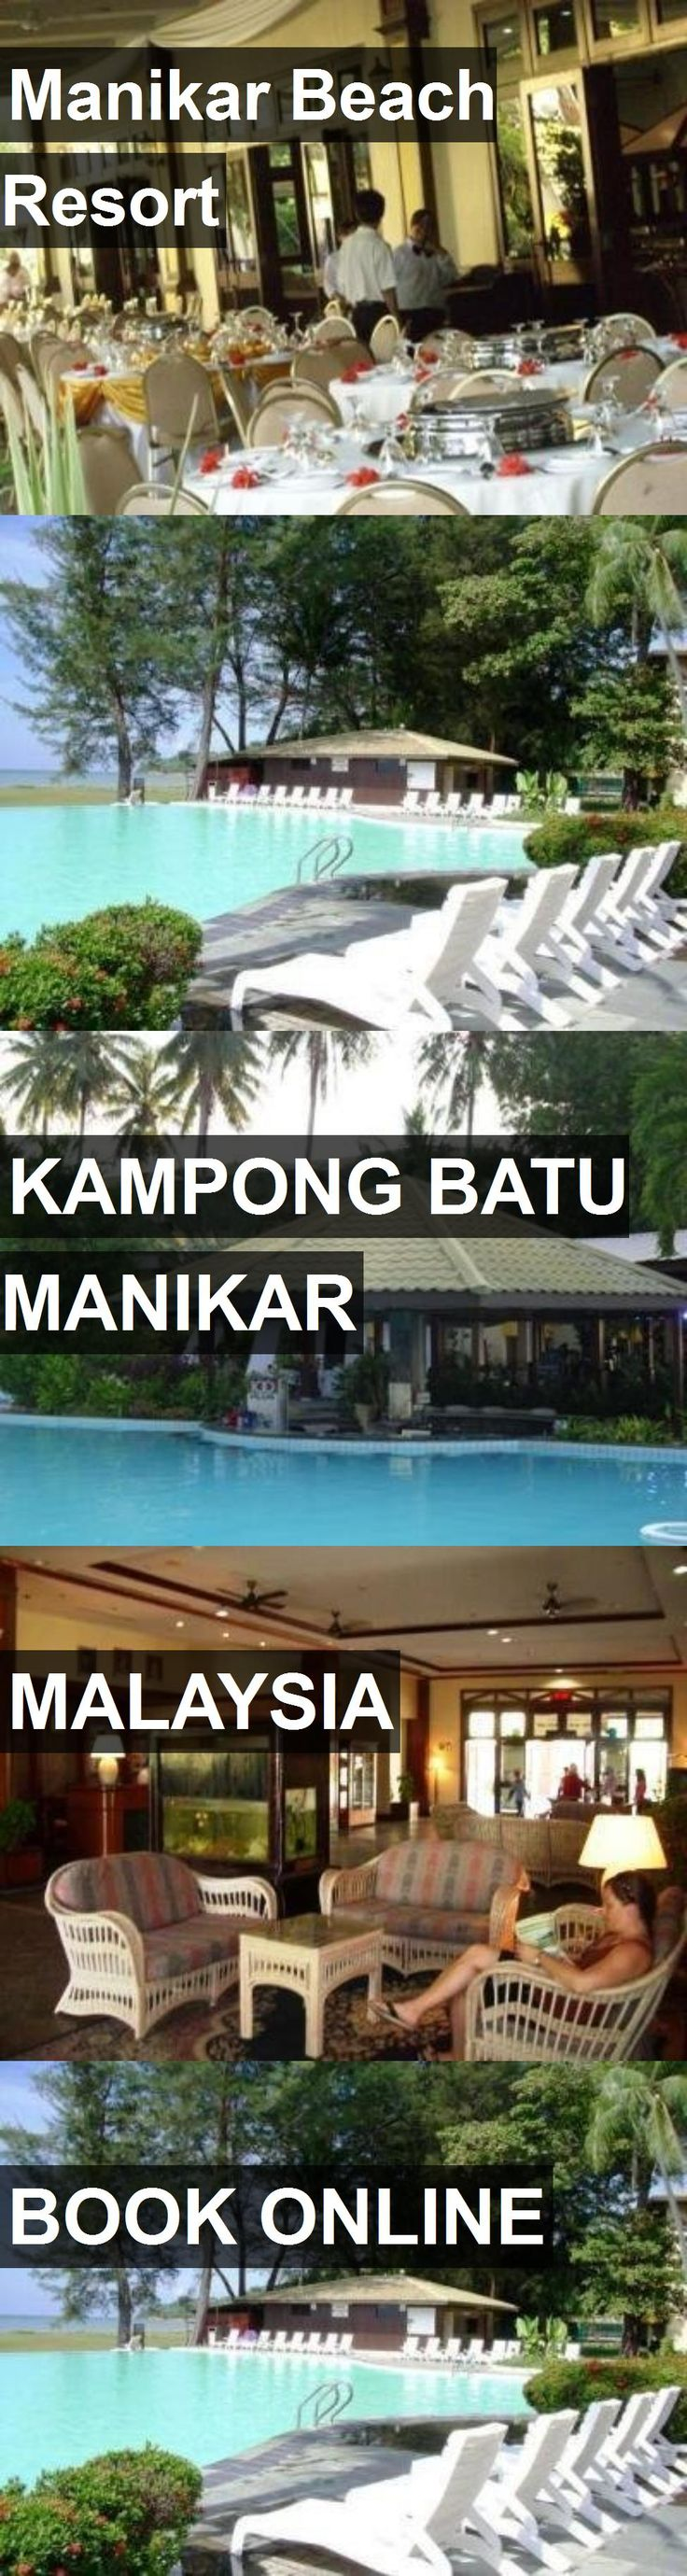 Hotel Manikar Beach Resort in Kampong Batu Manikar, Malaysia. For more information, photos, reviews and best prices please follow the link. #Malaysia #KampongBatuManikar #travel #vacation #hotel